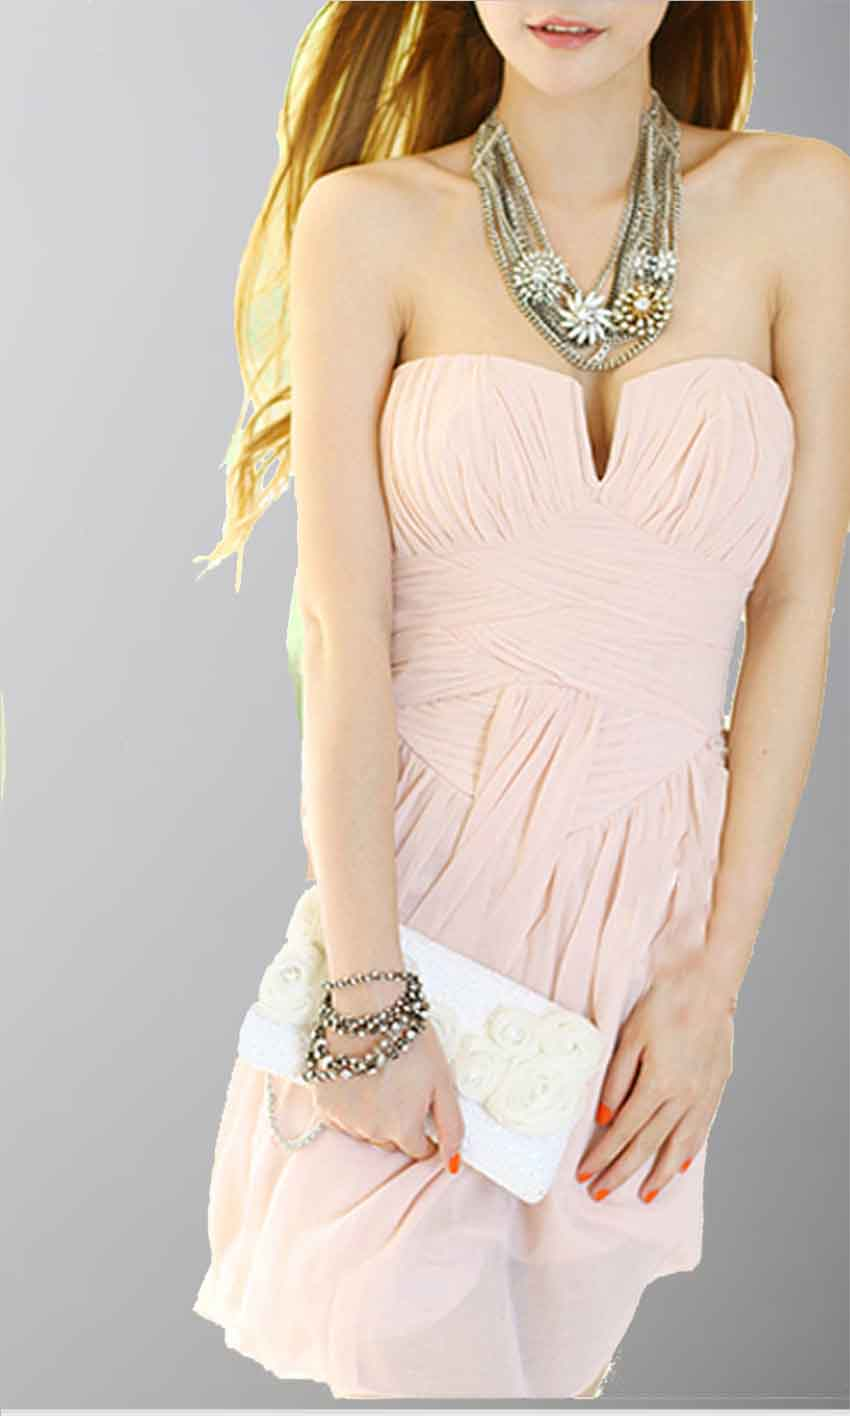 Strapless V-neck Strapless Short Prom Dress KSP040 [KSP040] - £75.00 : Cheap Prom Dresses Uk, Bridesmaid Dresses, 2014 Prom & Evening Dresses, Look for cheap elegant prom dresses 2014, cocktail gowns, or dresses for special occasions? kissprom.co.uk offers various bridesmaid dresses, evening dress, free shipping to UK etc.